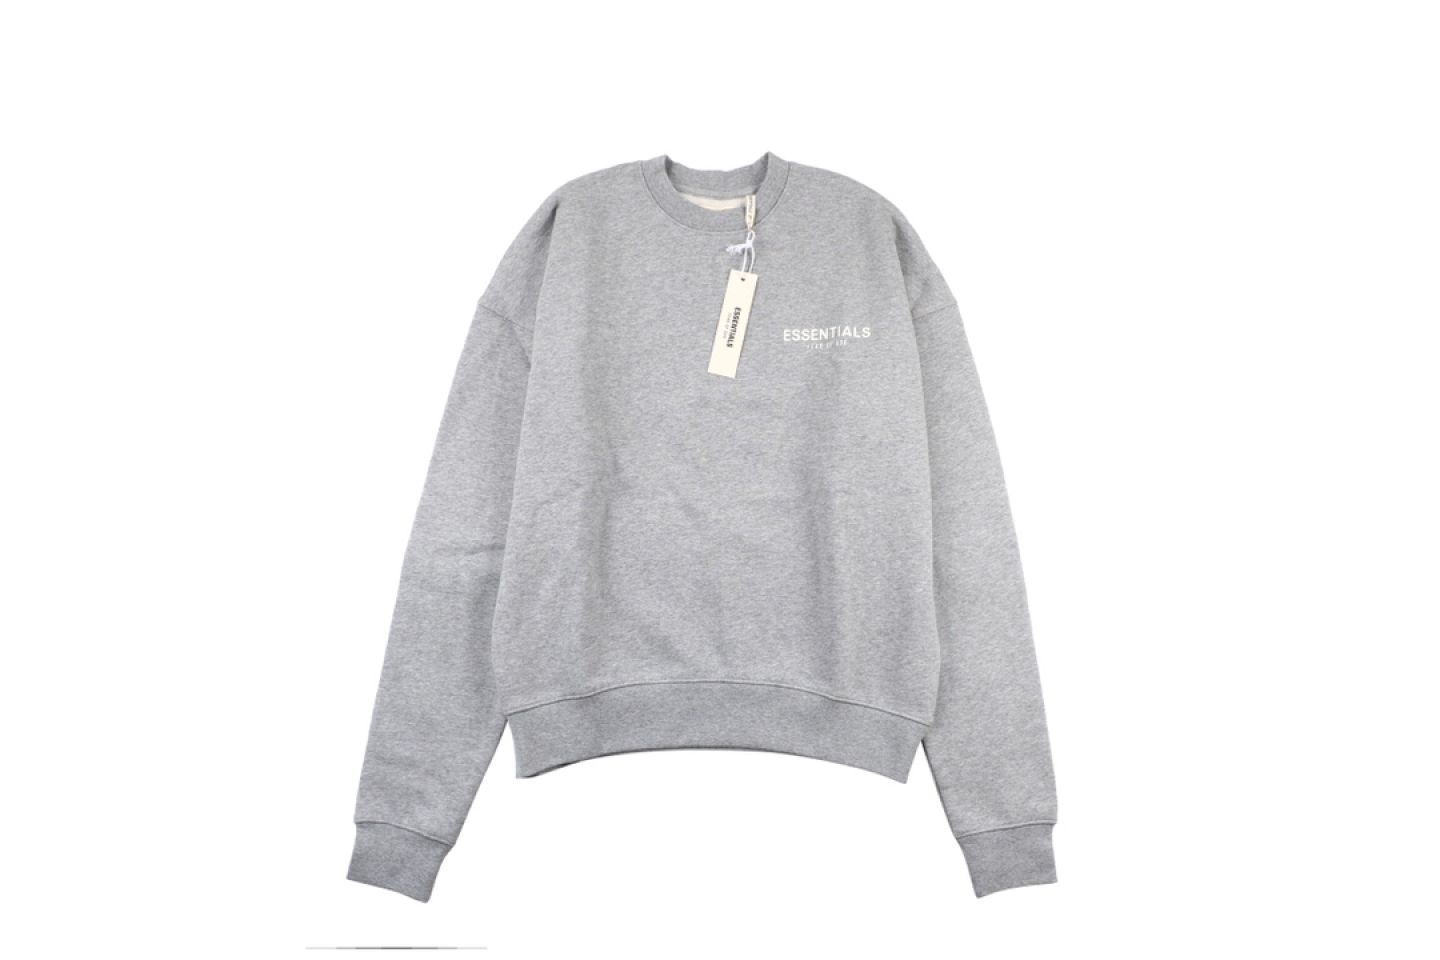 "Shirt Fear Of God Essential double line crew neck sweater ""Grey"" 1 fear_of_god_essential_double_line_crew_neck_sweater_grey_1"